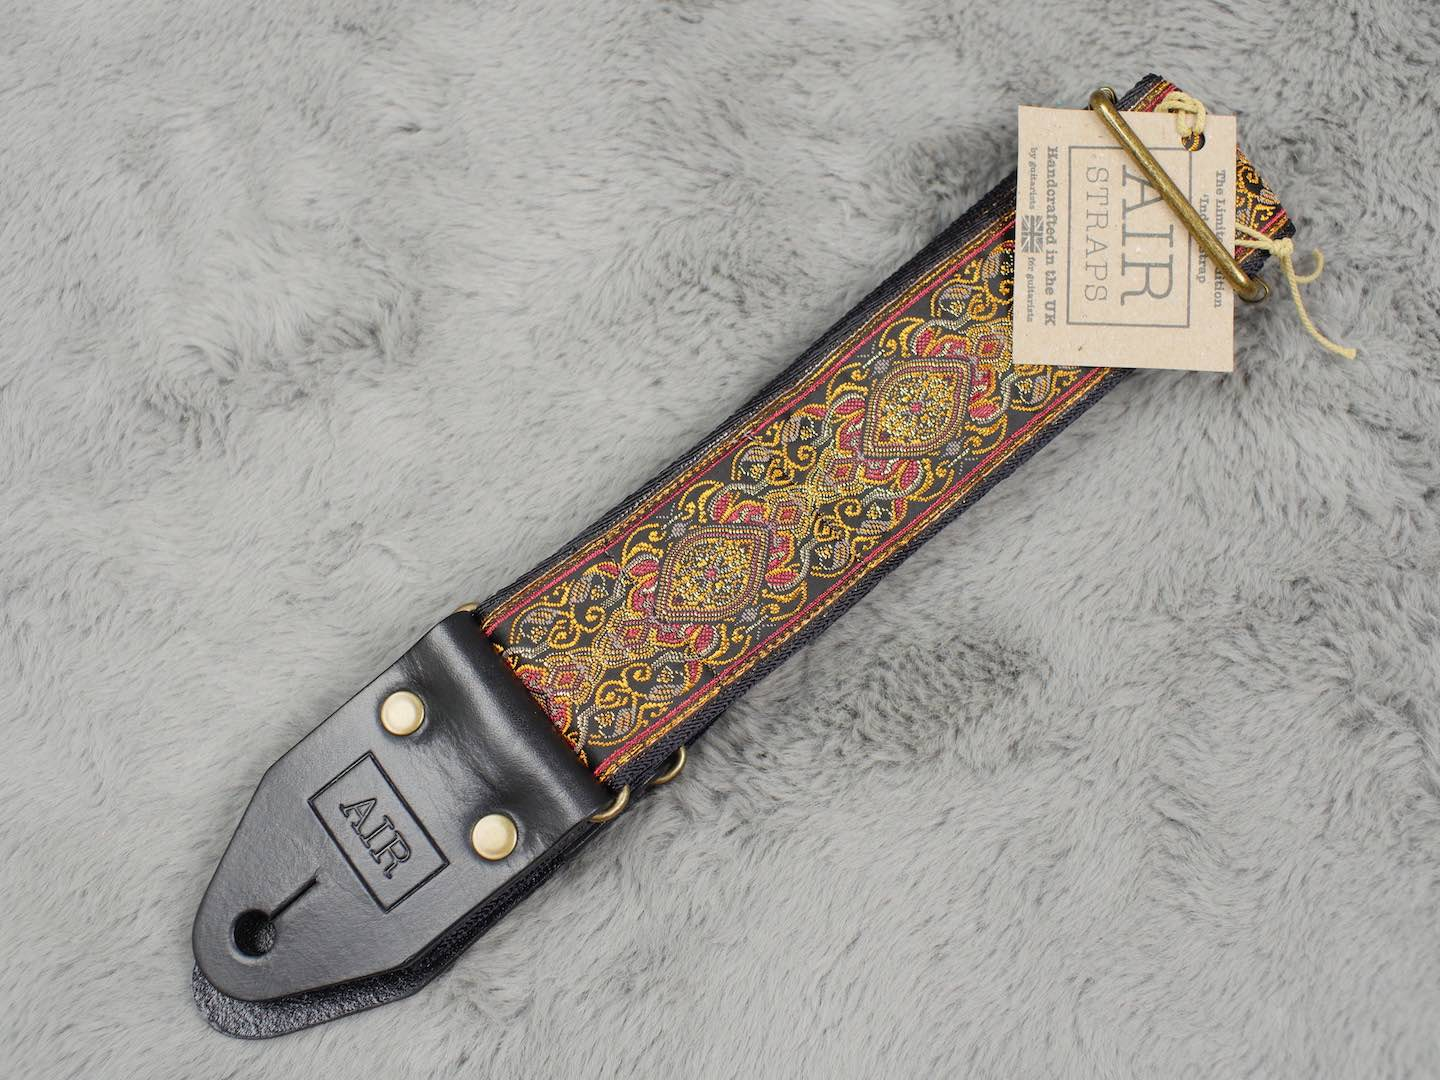 Air Straps Limited Edition 'Indus' Guitar Strap - Free Shipping!